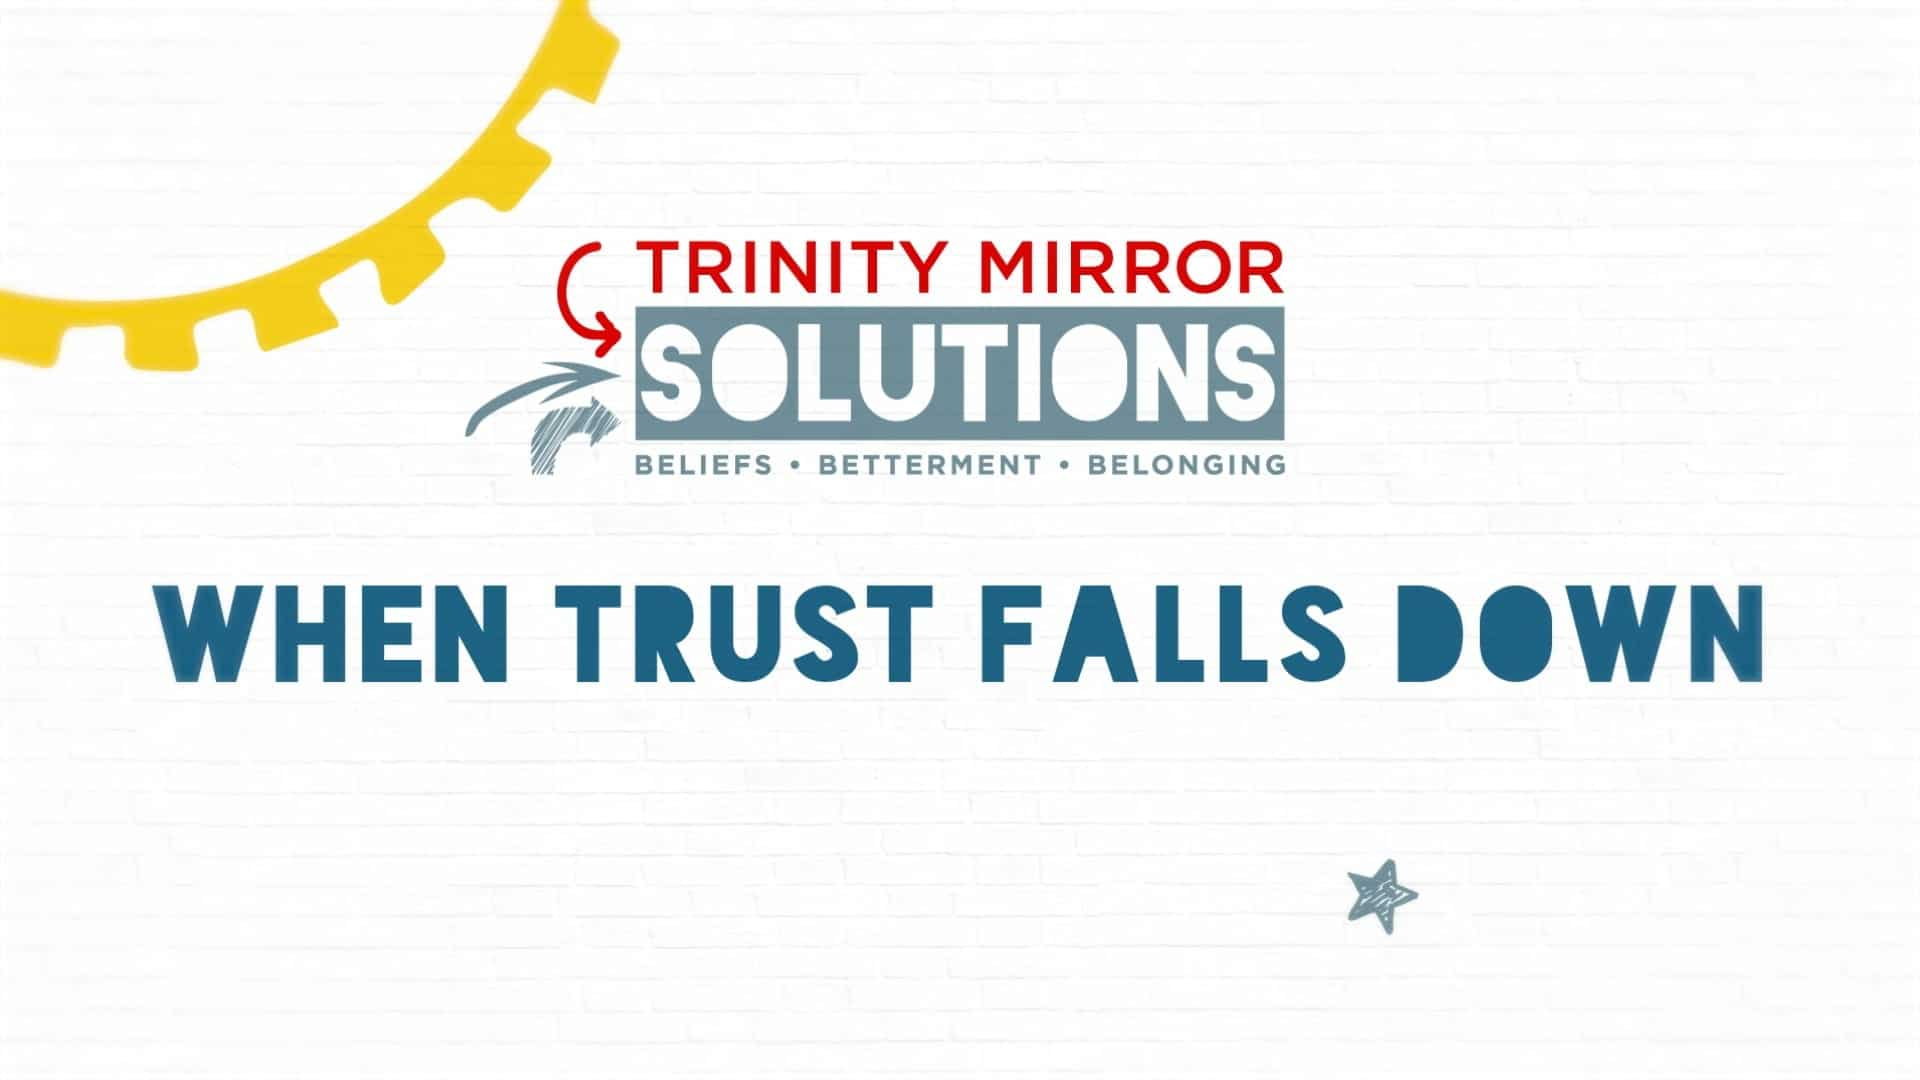 animated explainer video for research - trinity mirror when trust falls down image